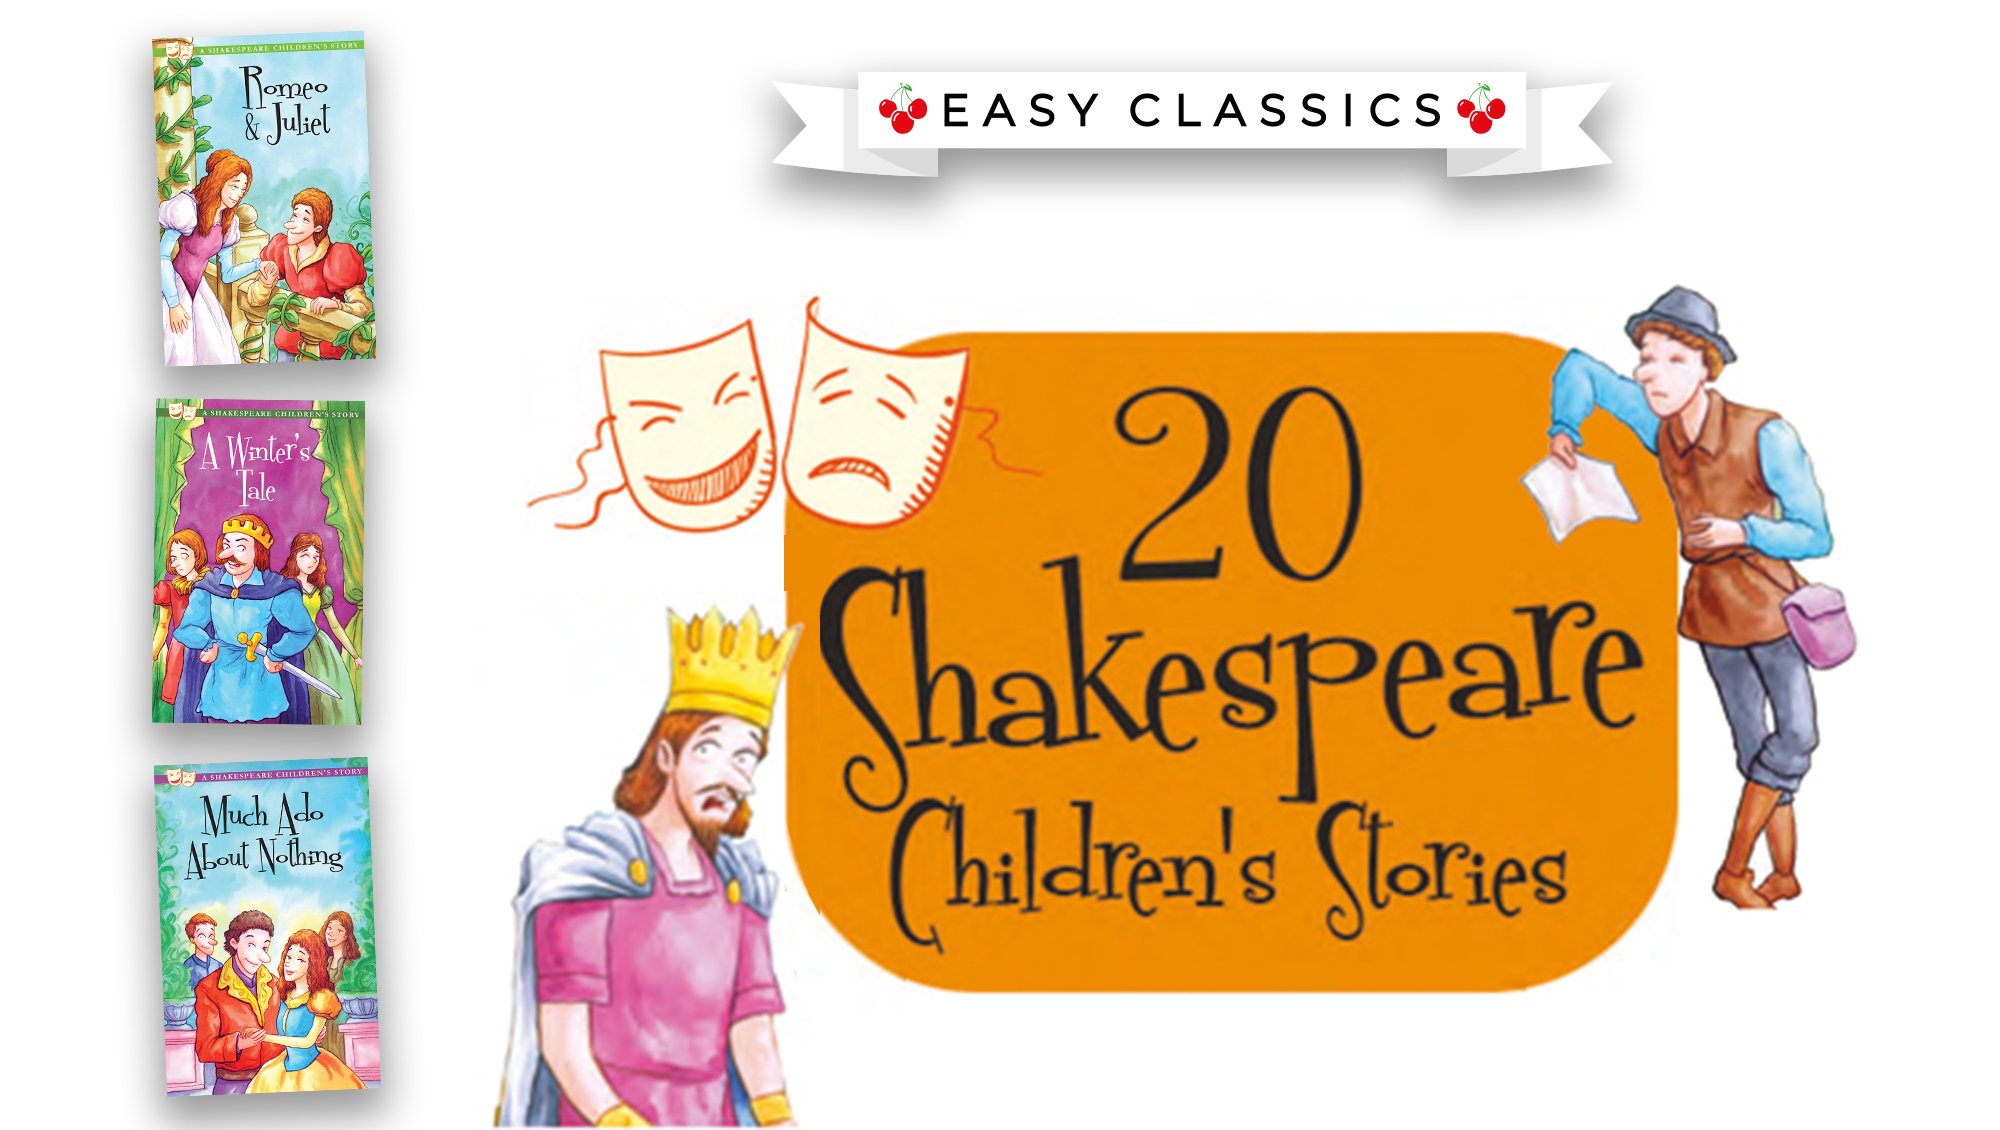 Shakespeare Children's Stories